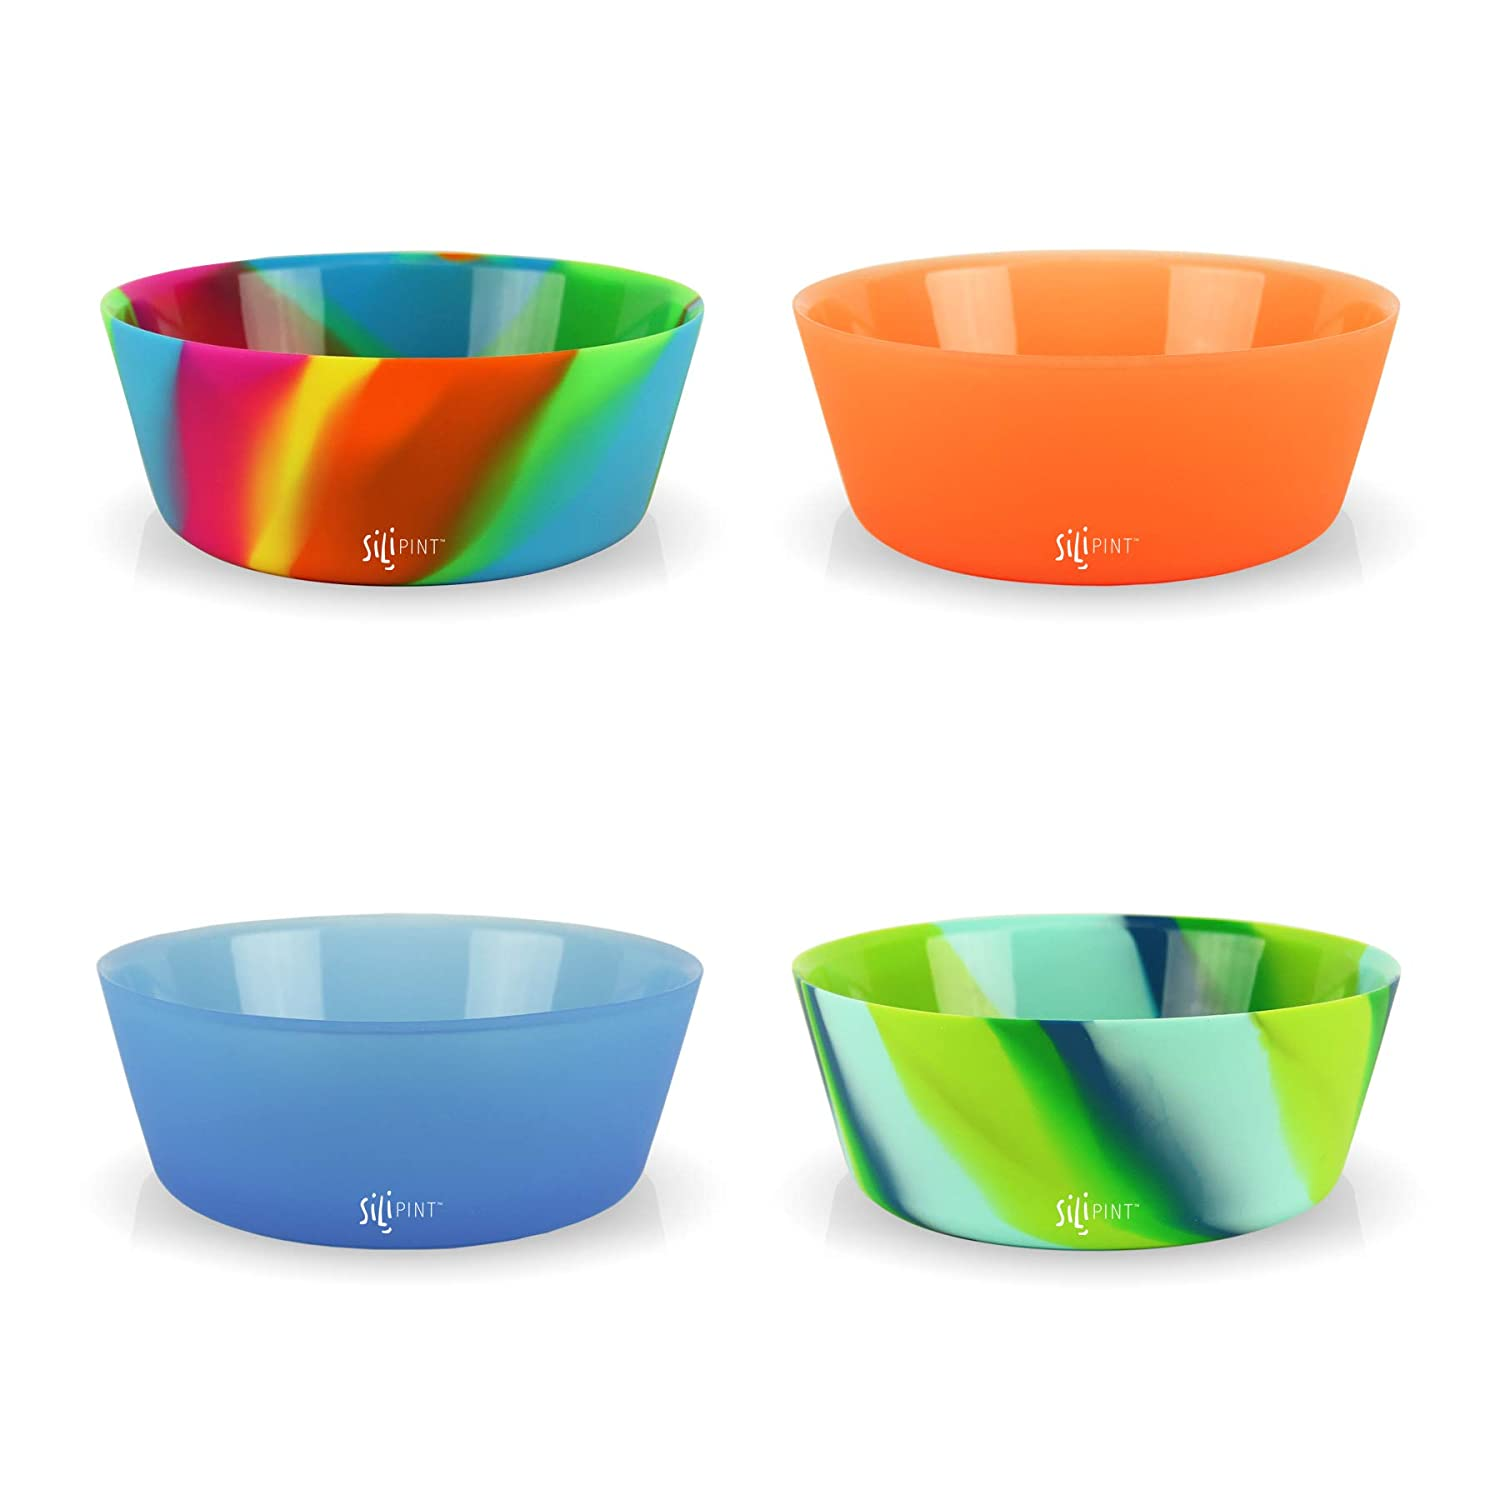 Silipint Silicone Bowl Set, BPA-Free, Unbreakable, Flexible, Microwave Safe, Oven Safe, BBQ Safe, Indoor and Outdoor Use